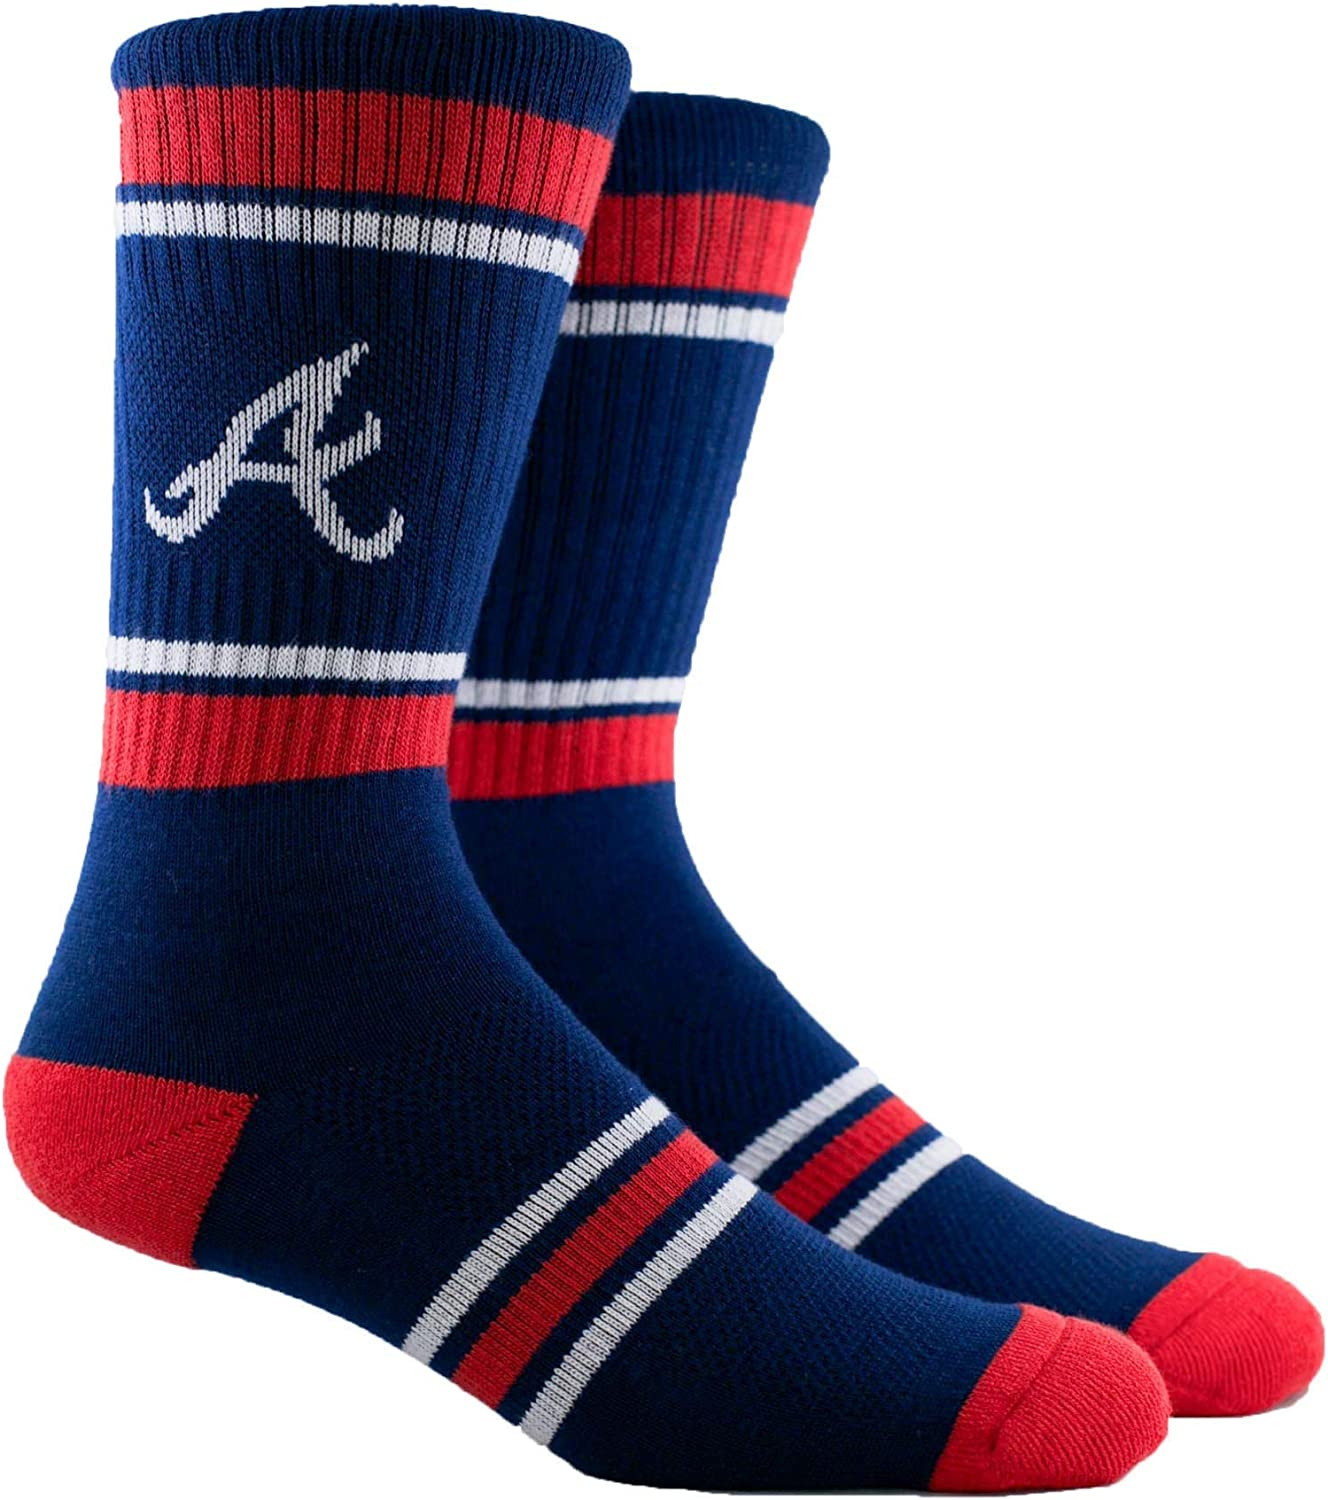 PKWY Unisex 2-Pack MLB Atlanta Braves Mixed Crew Socks